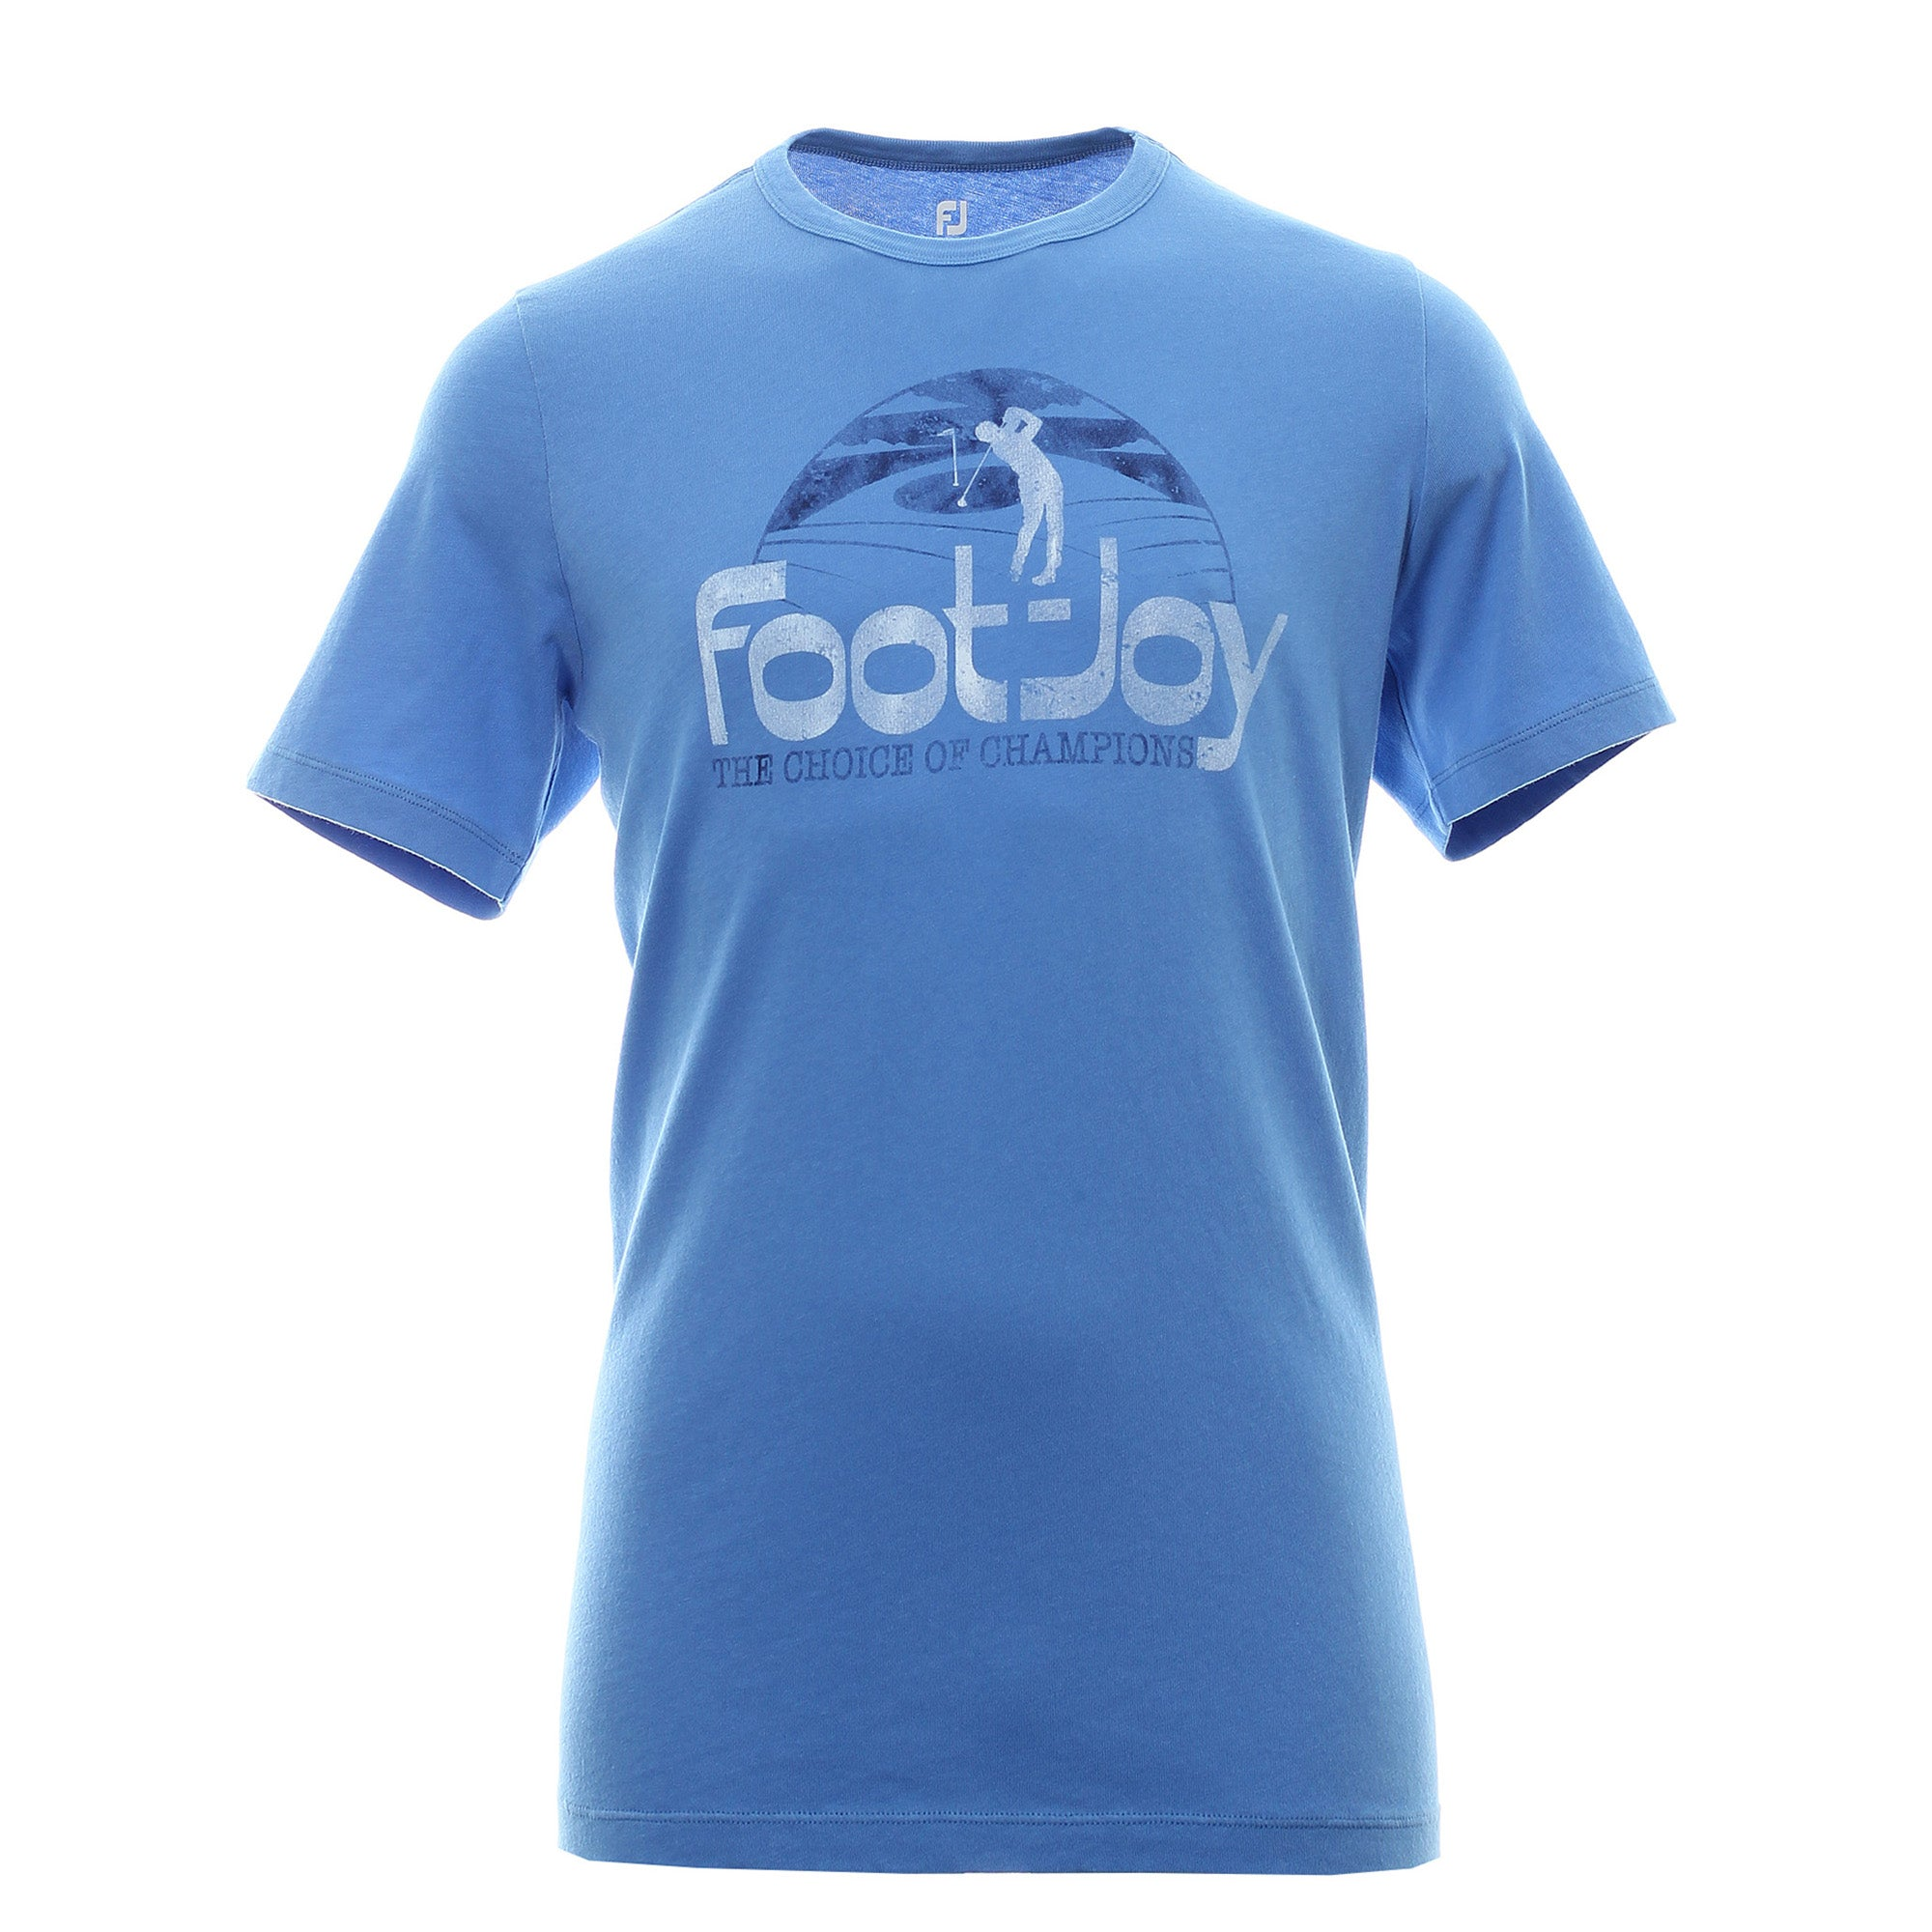 FootJoy Heritage Graphic Golf Tee Shirt 90191